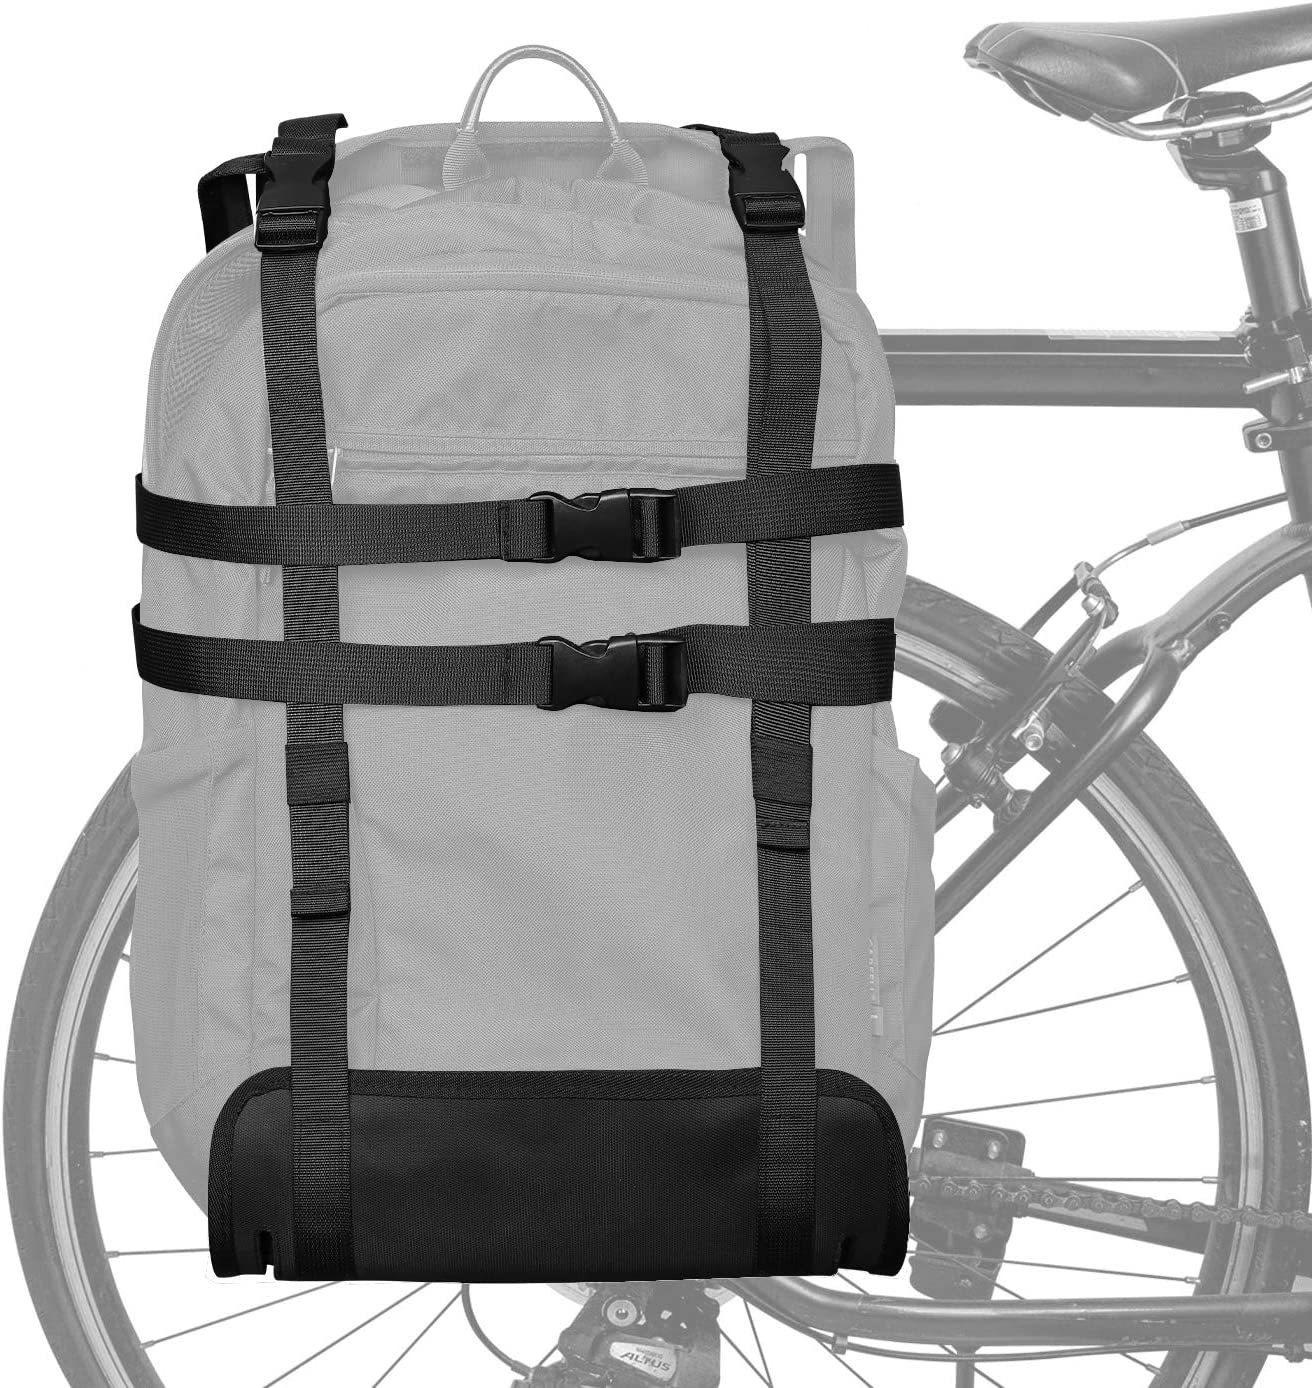 Epessa Portable Bike Trunk Pannier, Bicycle Rack Rear Carrier Bag, Bike Luggage Carrying Strap